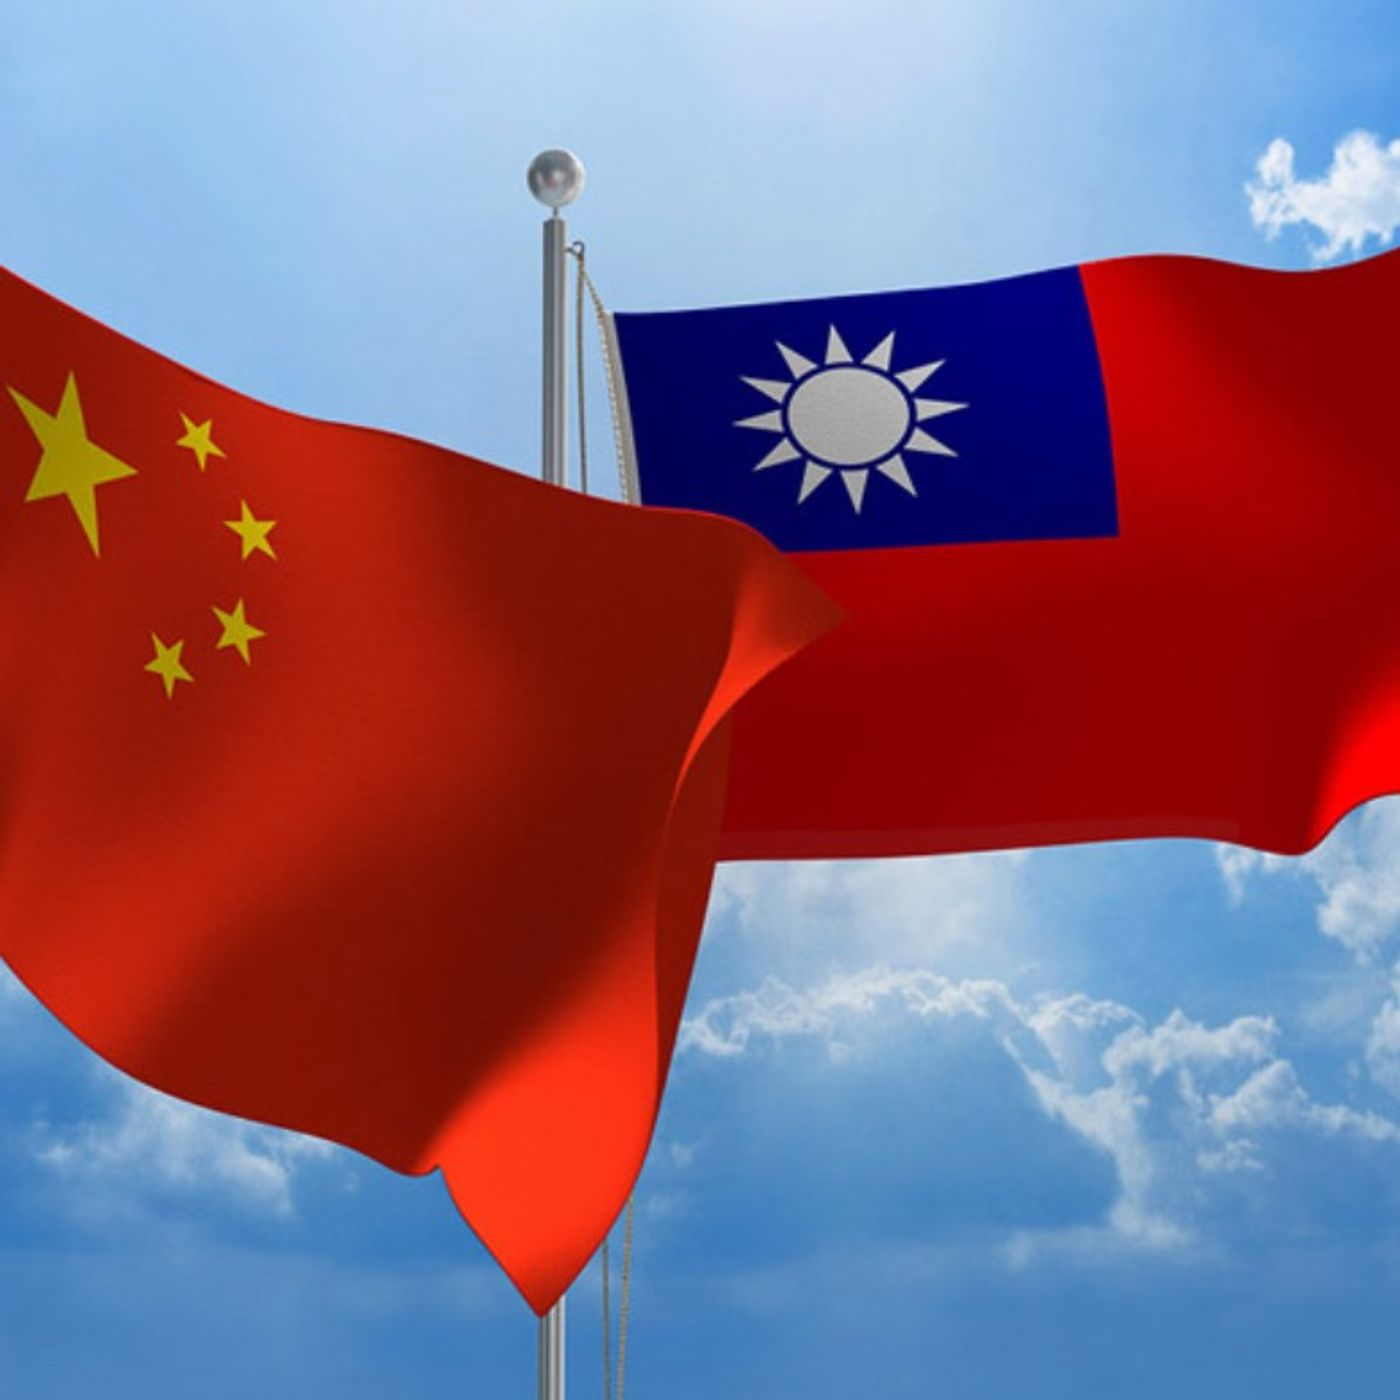 POLICY AND PRACTICE - China and Taiwan